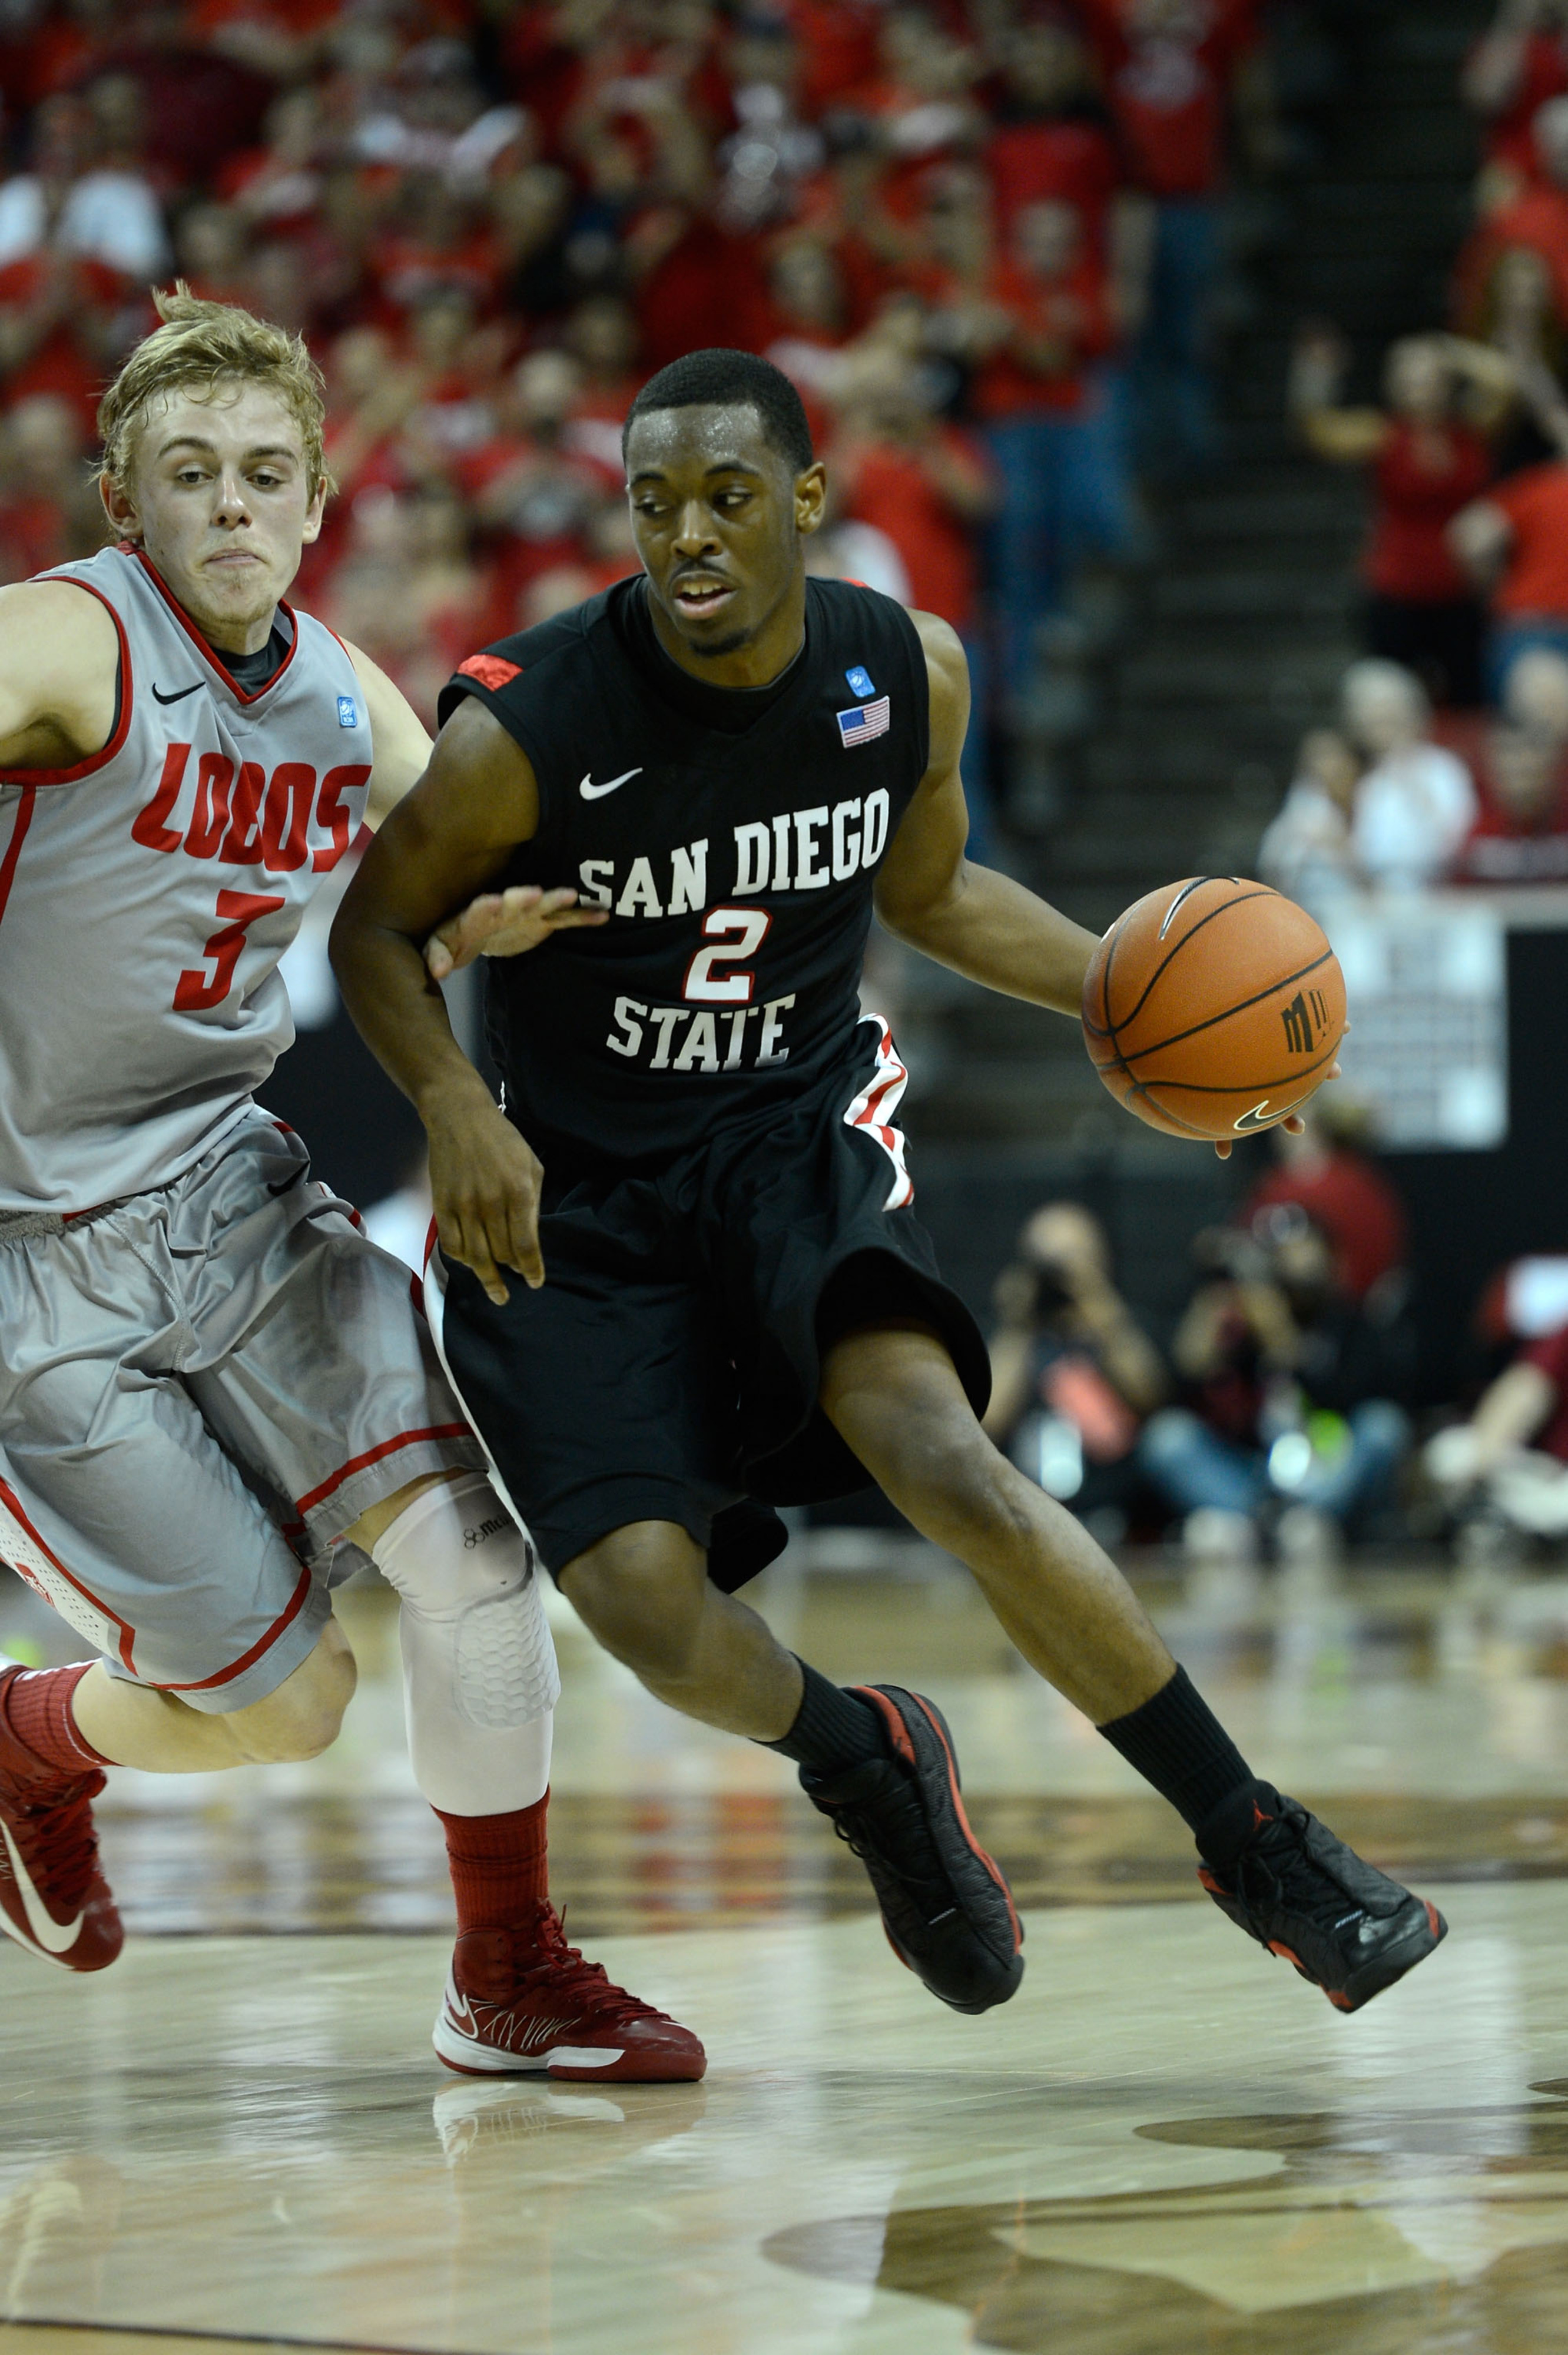 San Diego State and New Mexico battle for first place.